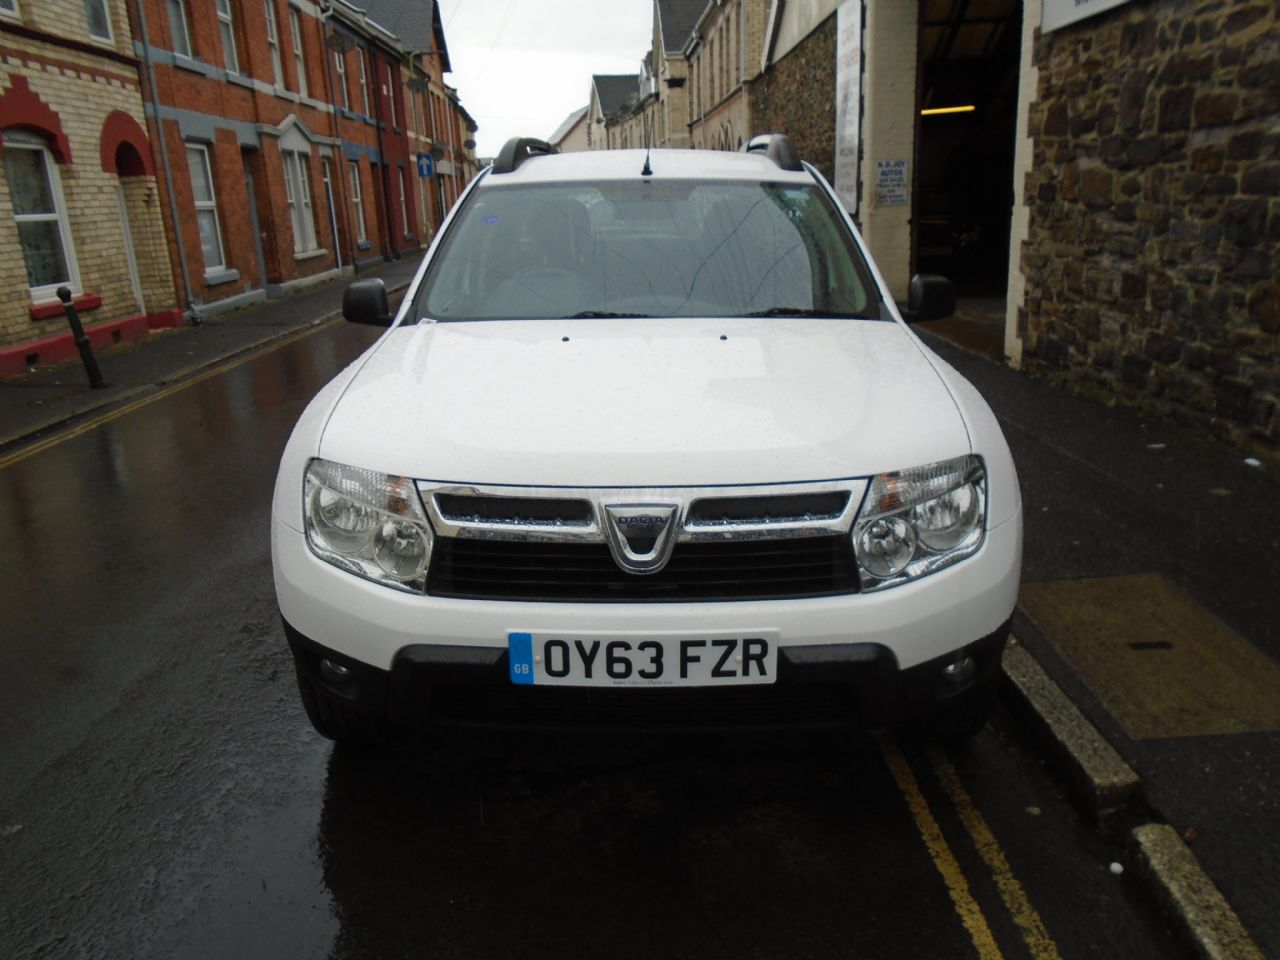 DACIA DUSTER Ambiance dCi 110 4x2 - Picture 2